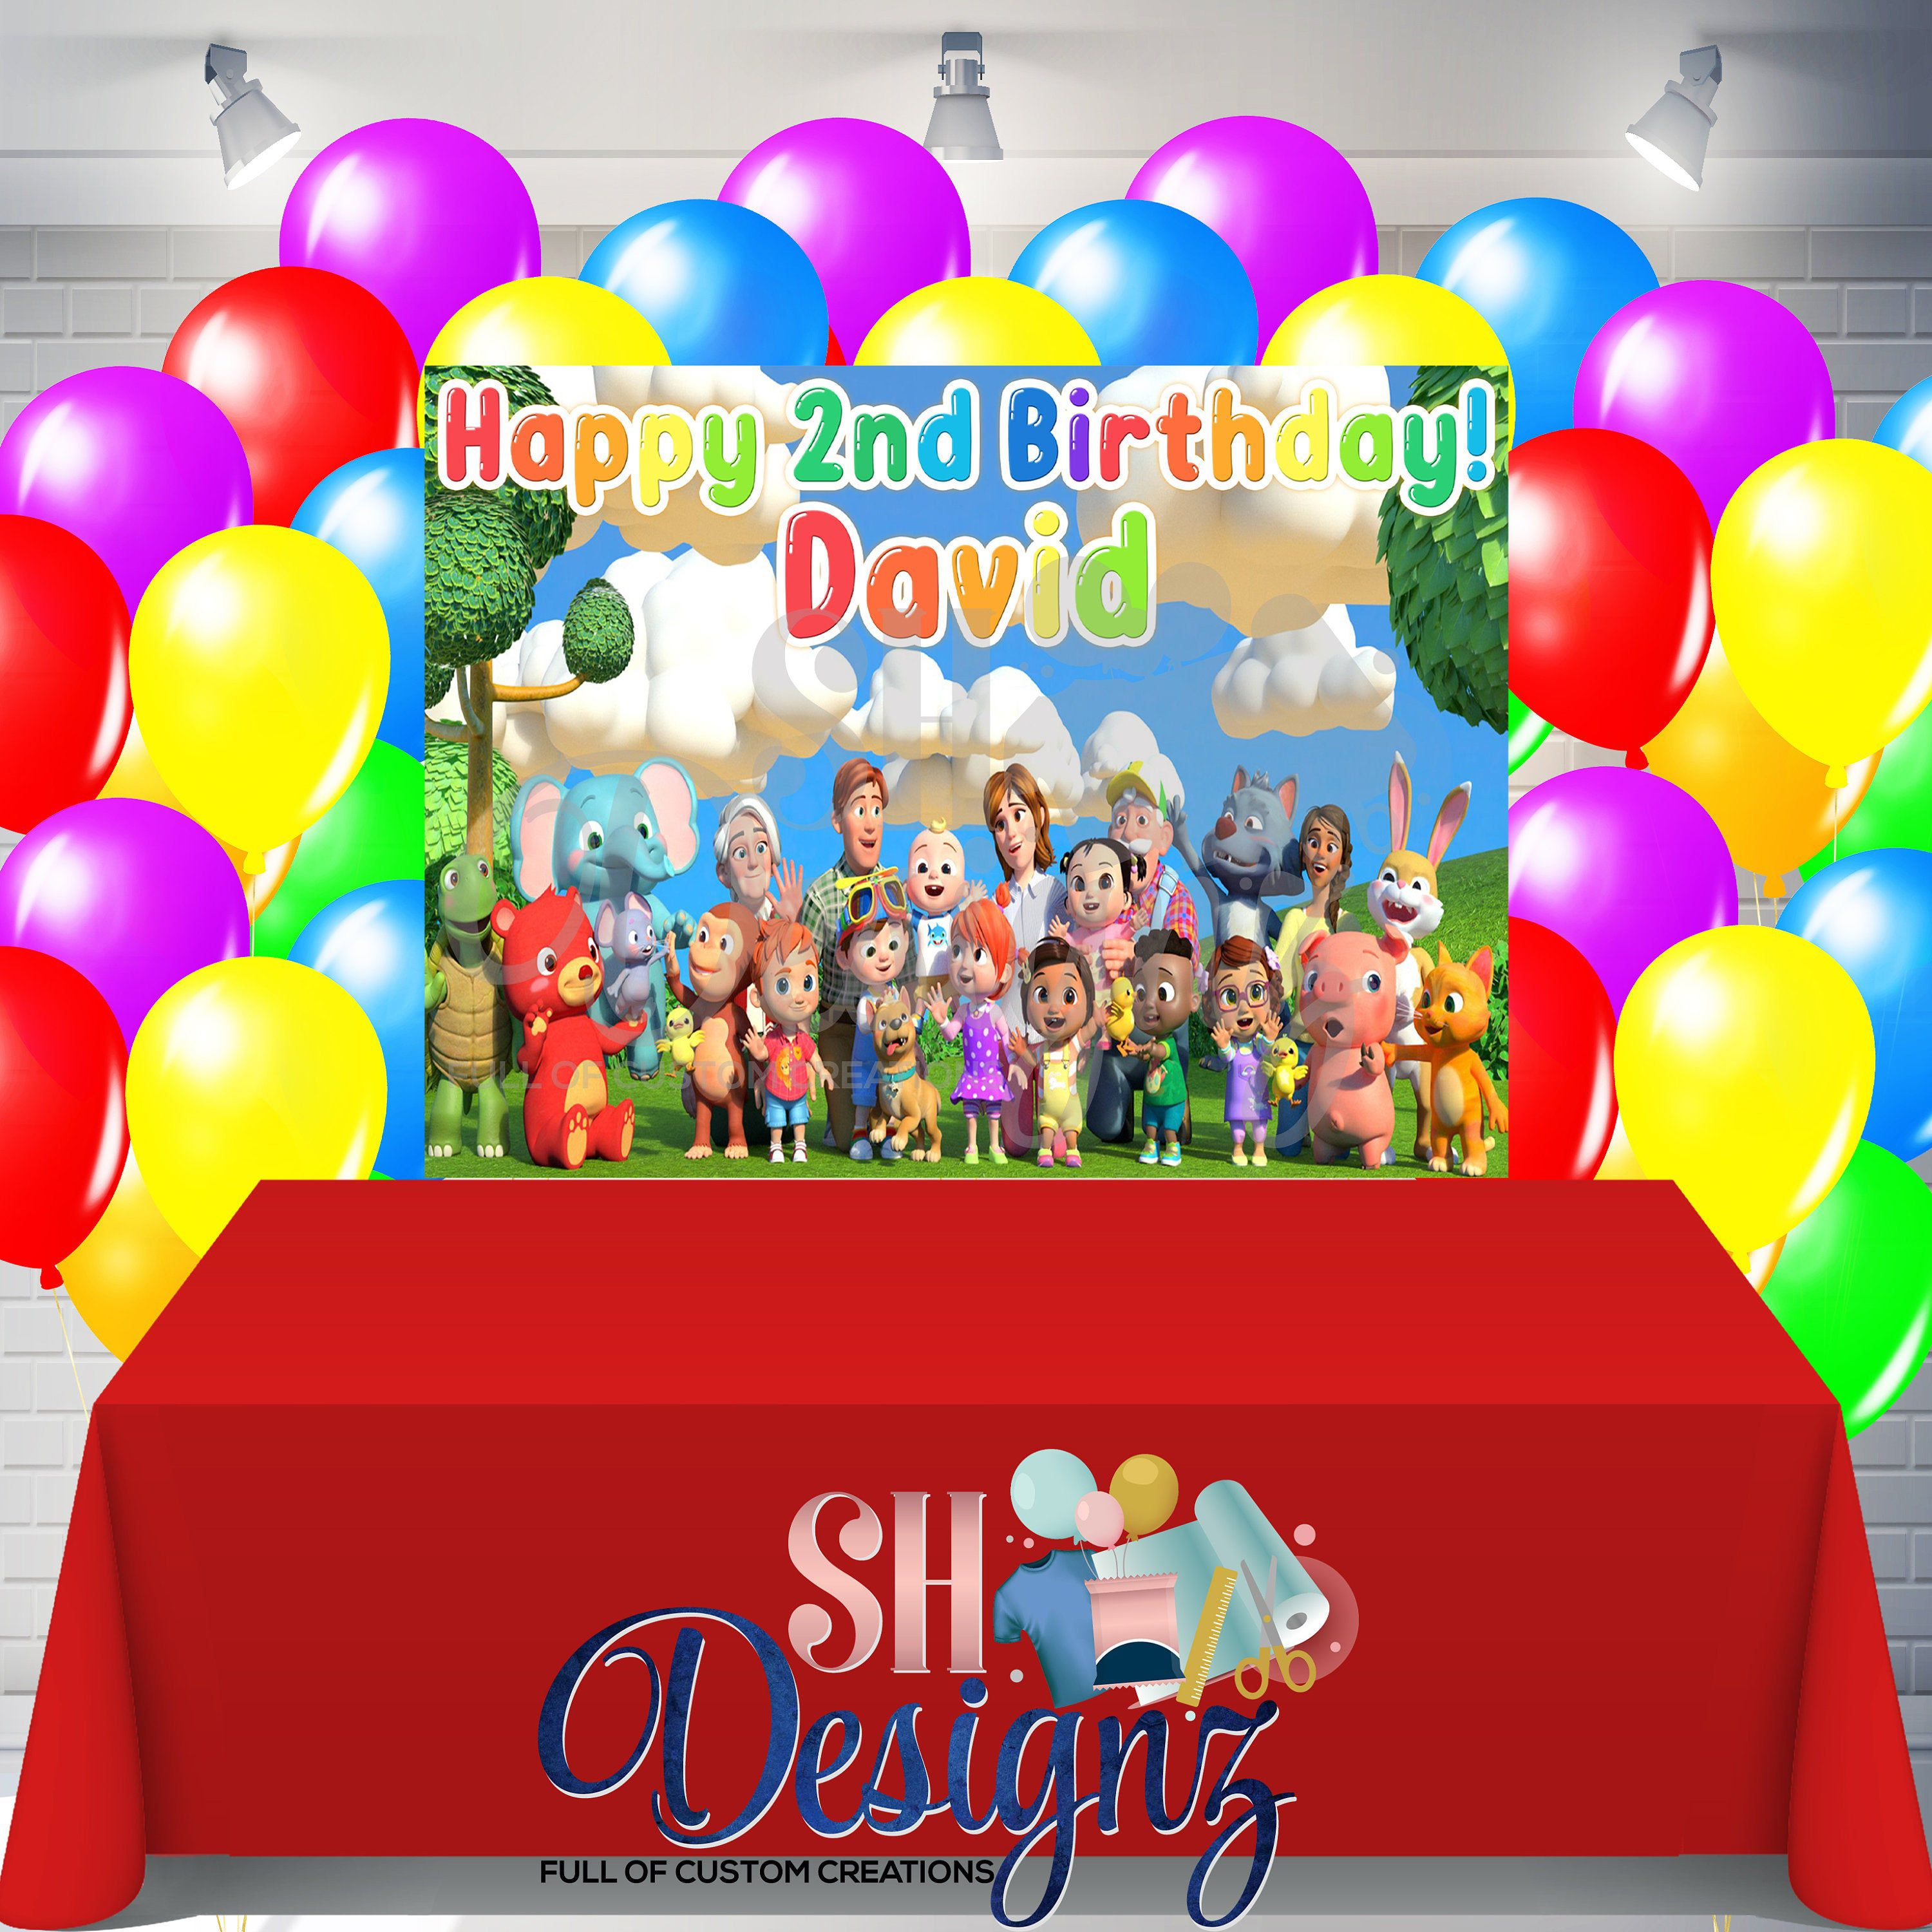 Vinil banner Printed and shipped or digital Cocomelon Birthday Backdrop